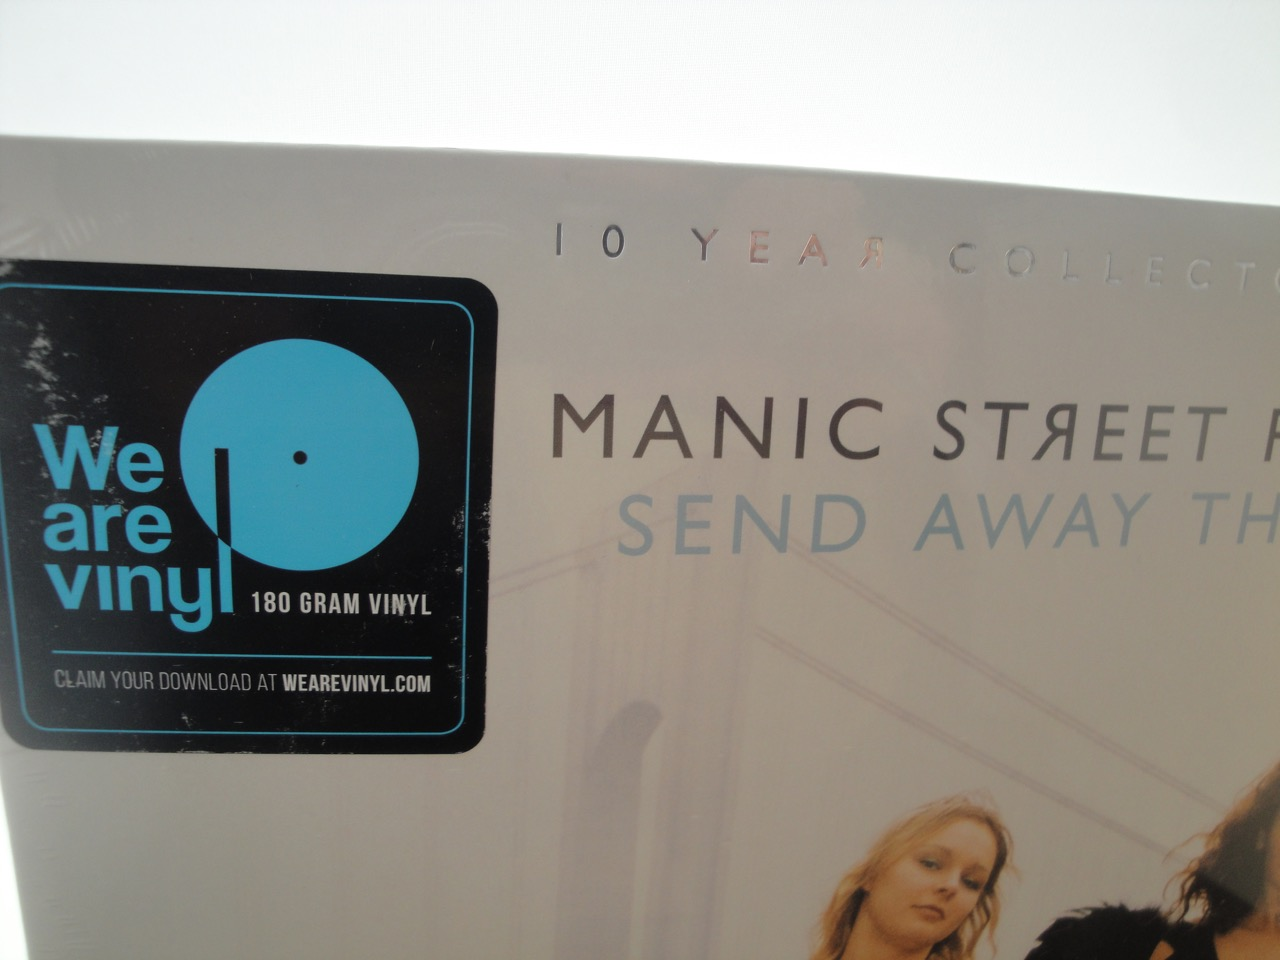 Manic Street Preachers - Send Away The Tigers - 10 Year Collectors Edition, 2XLP